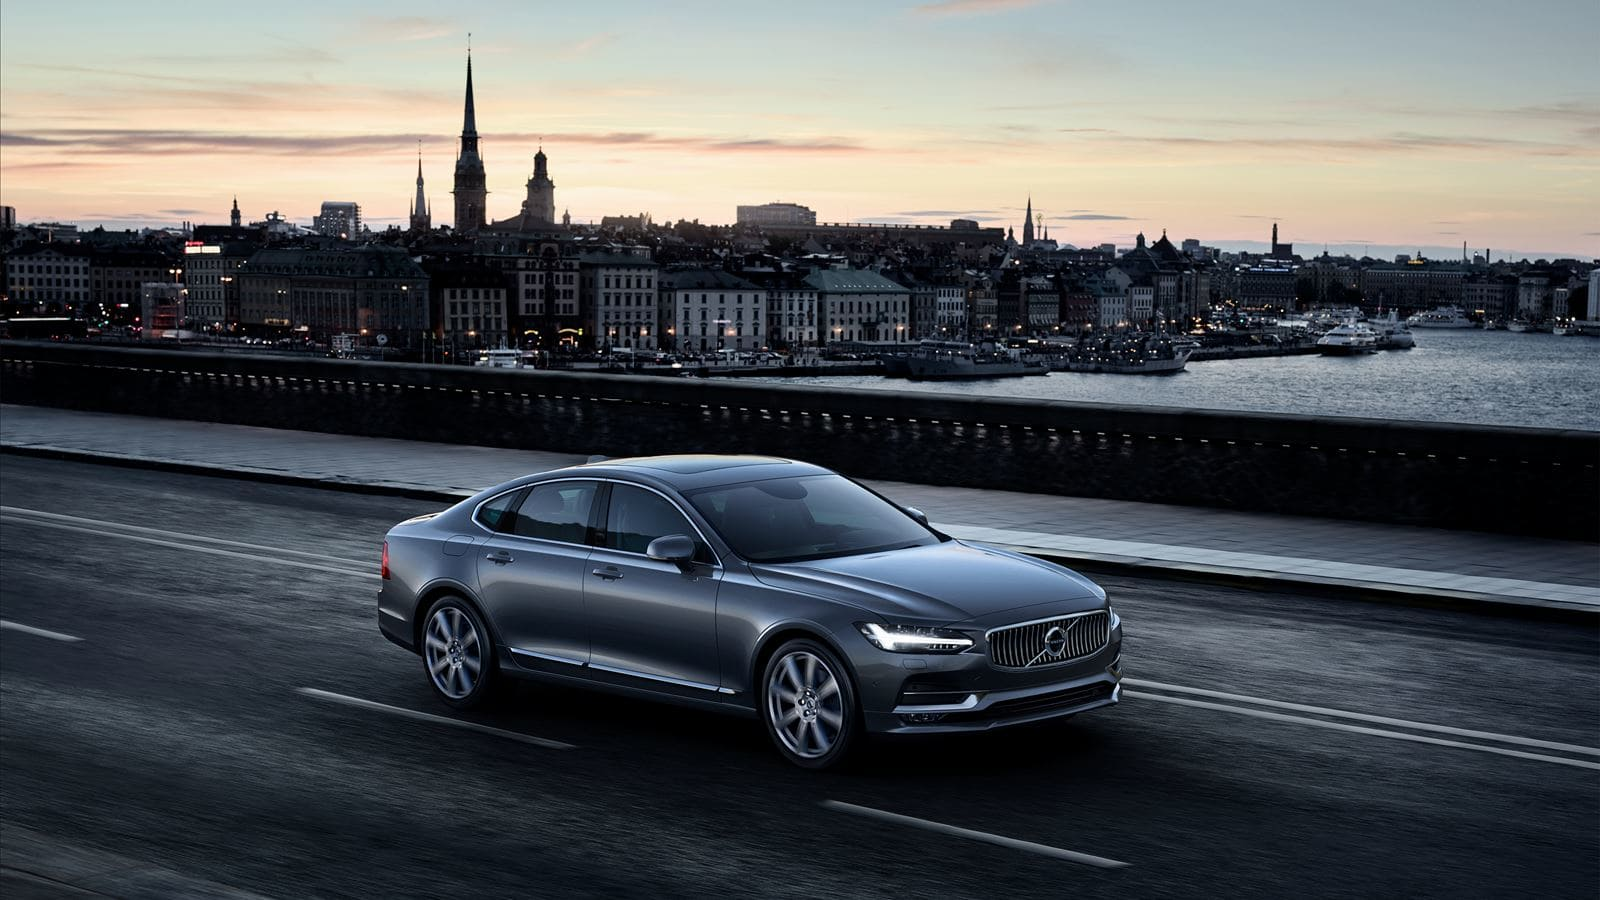 2018 Volvo S90 driving at sunset